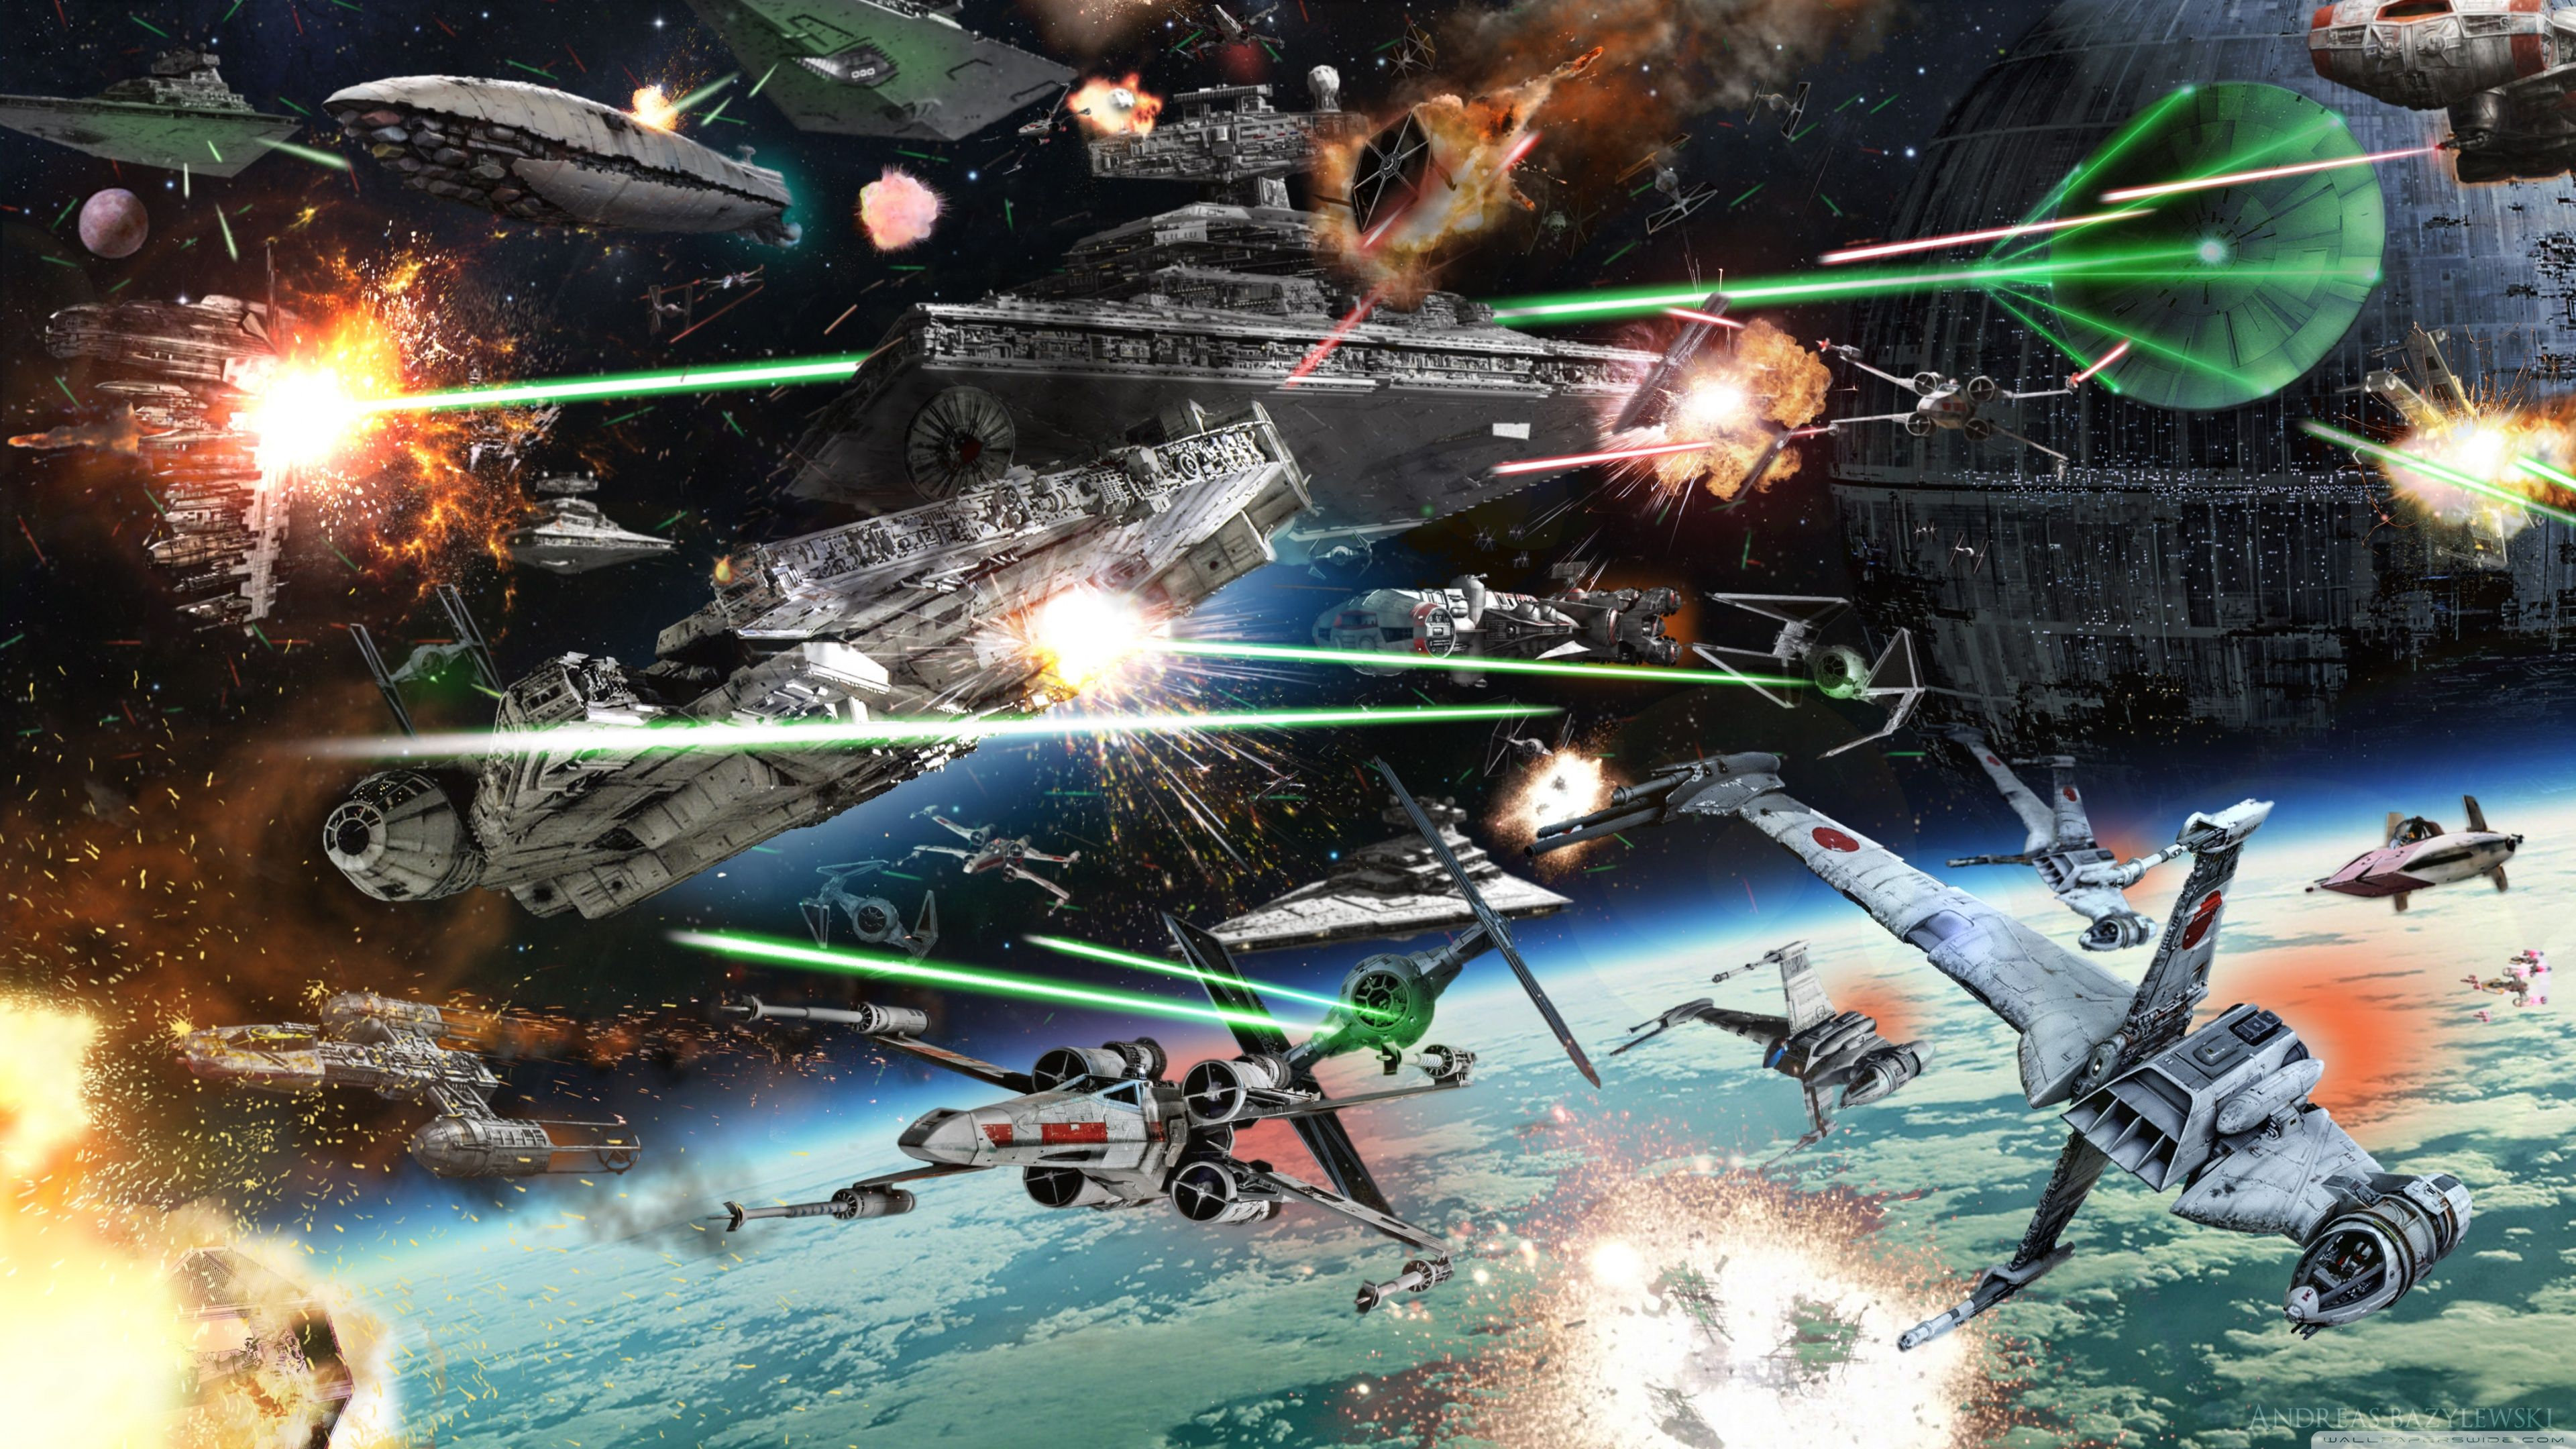 Star Wars Battle Wallpapers   Top Star Wars Battle 3840x2160